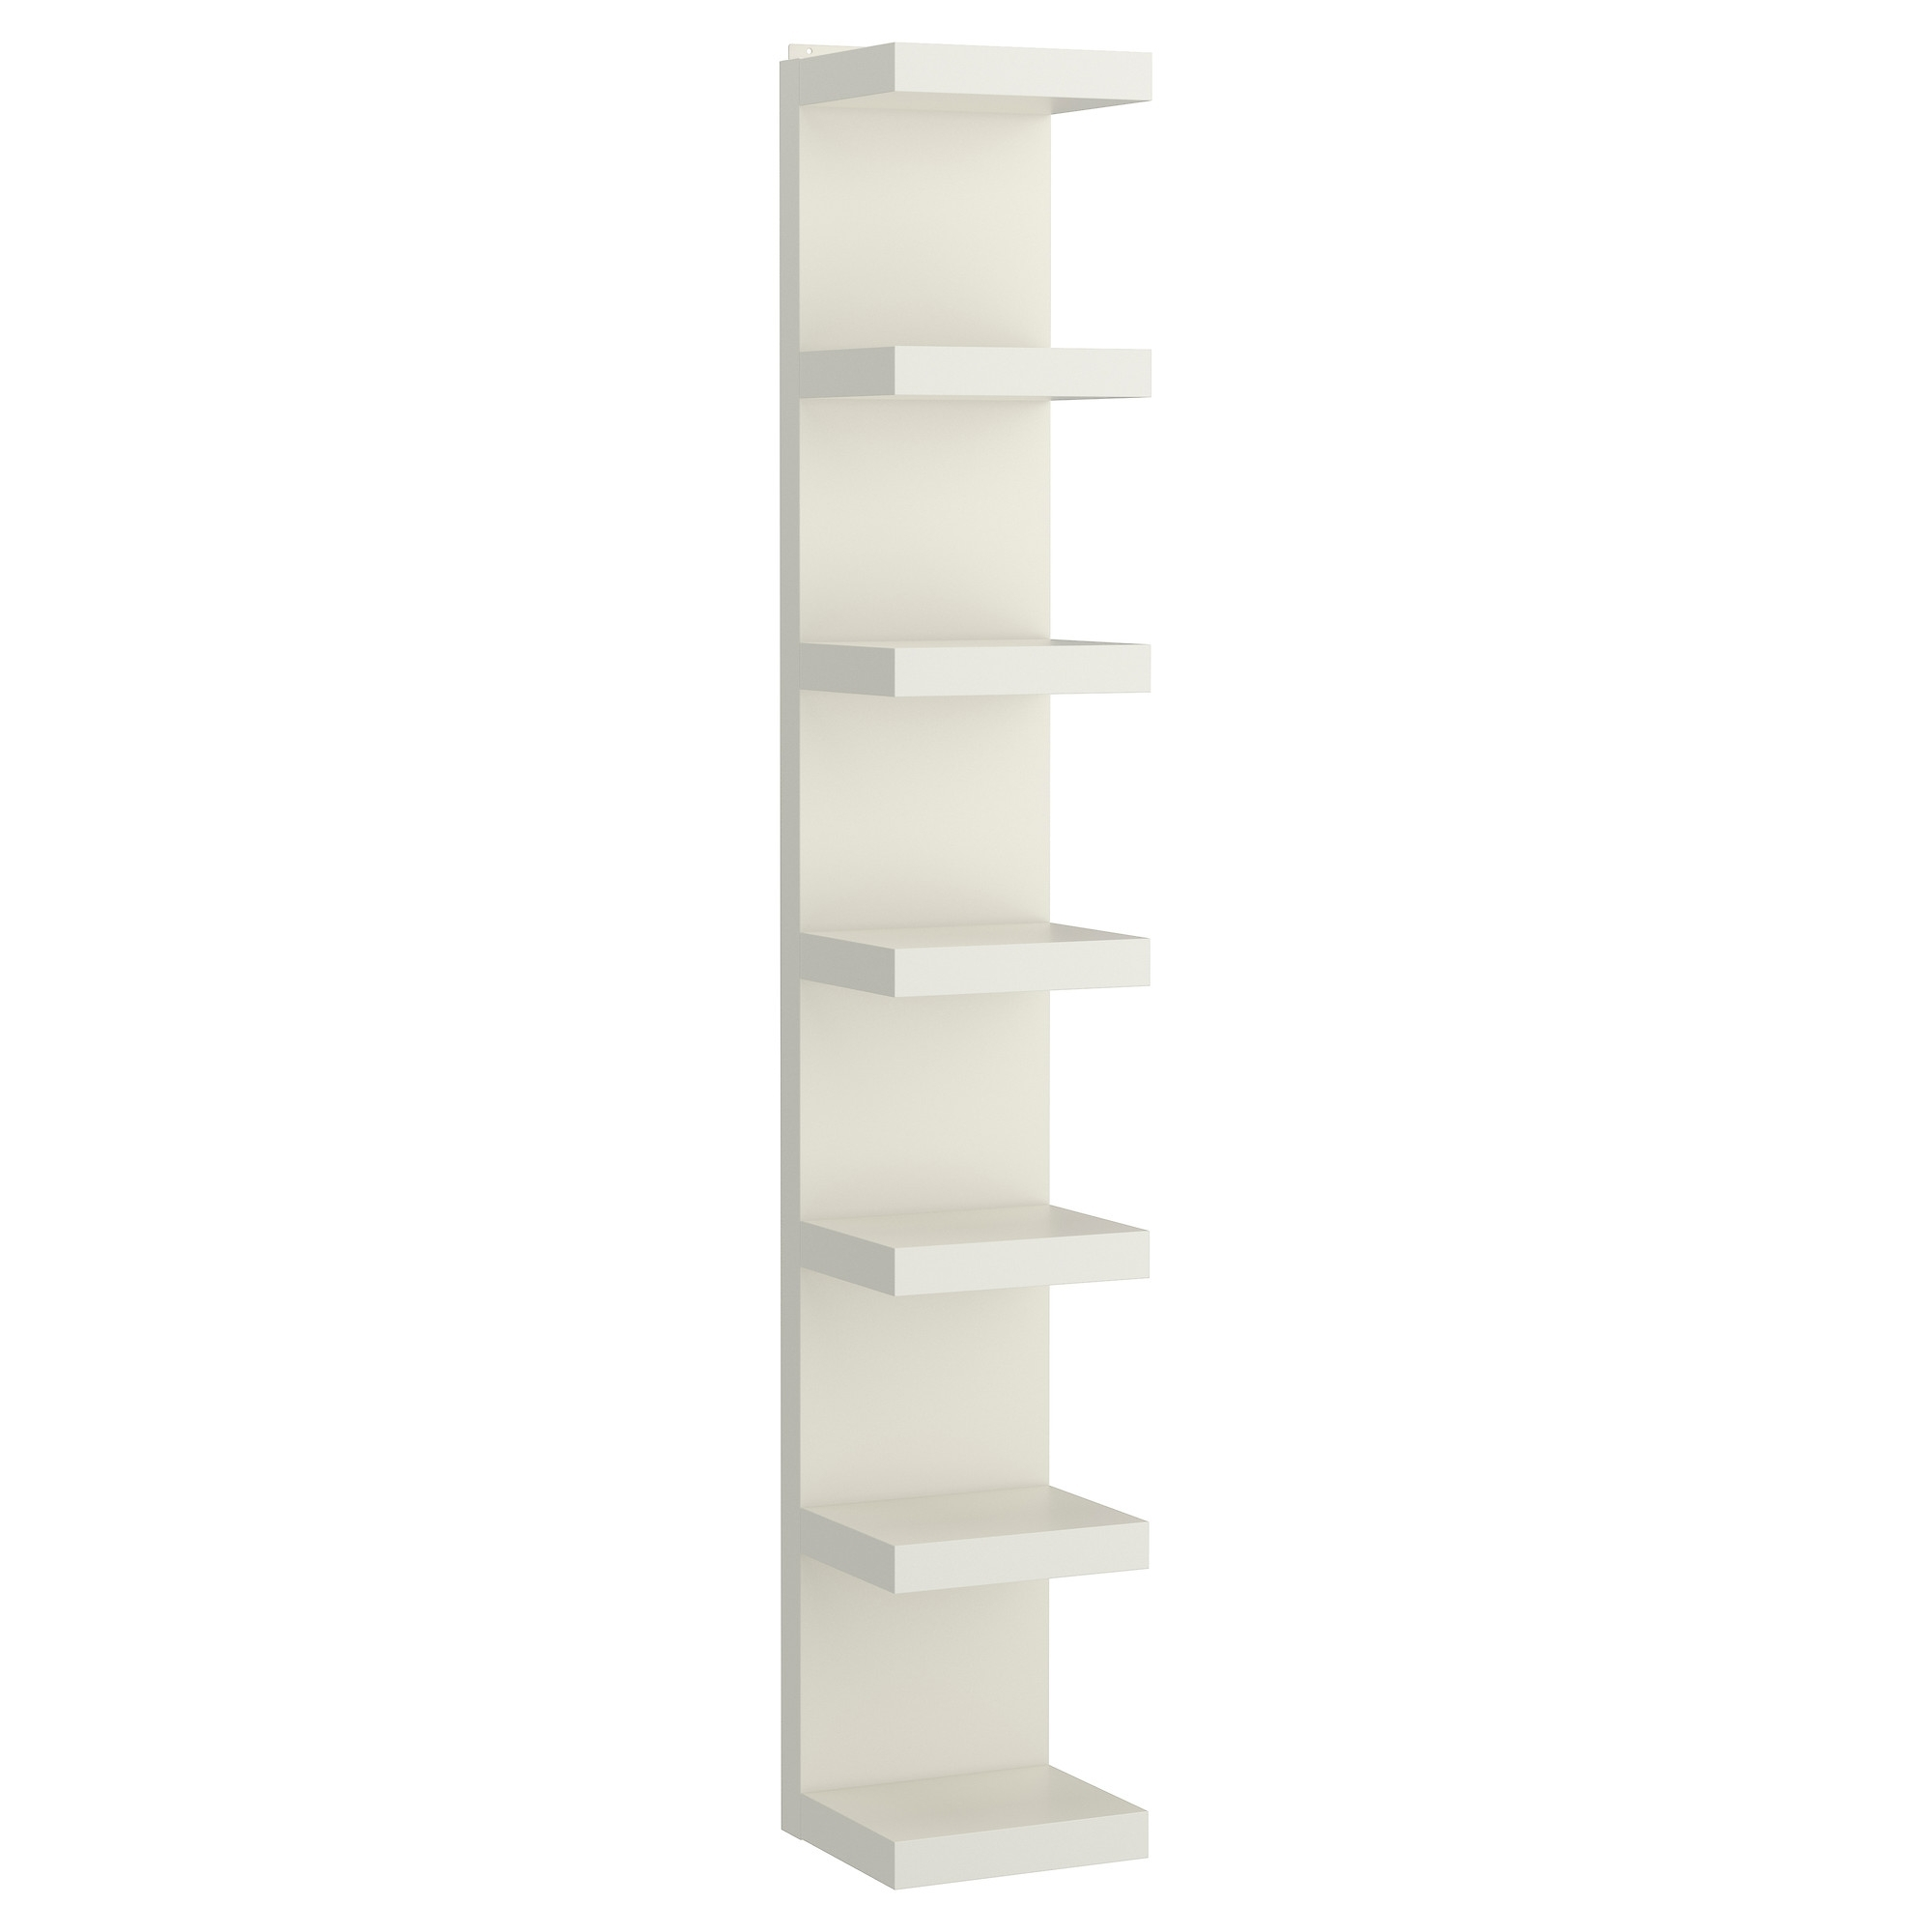 Well Known Ikea White Bookcases Intended For Lack Wall Shelf Unit – White – Ikea (View 6 of 15)